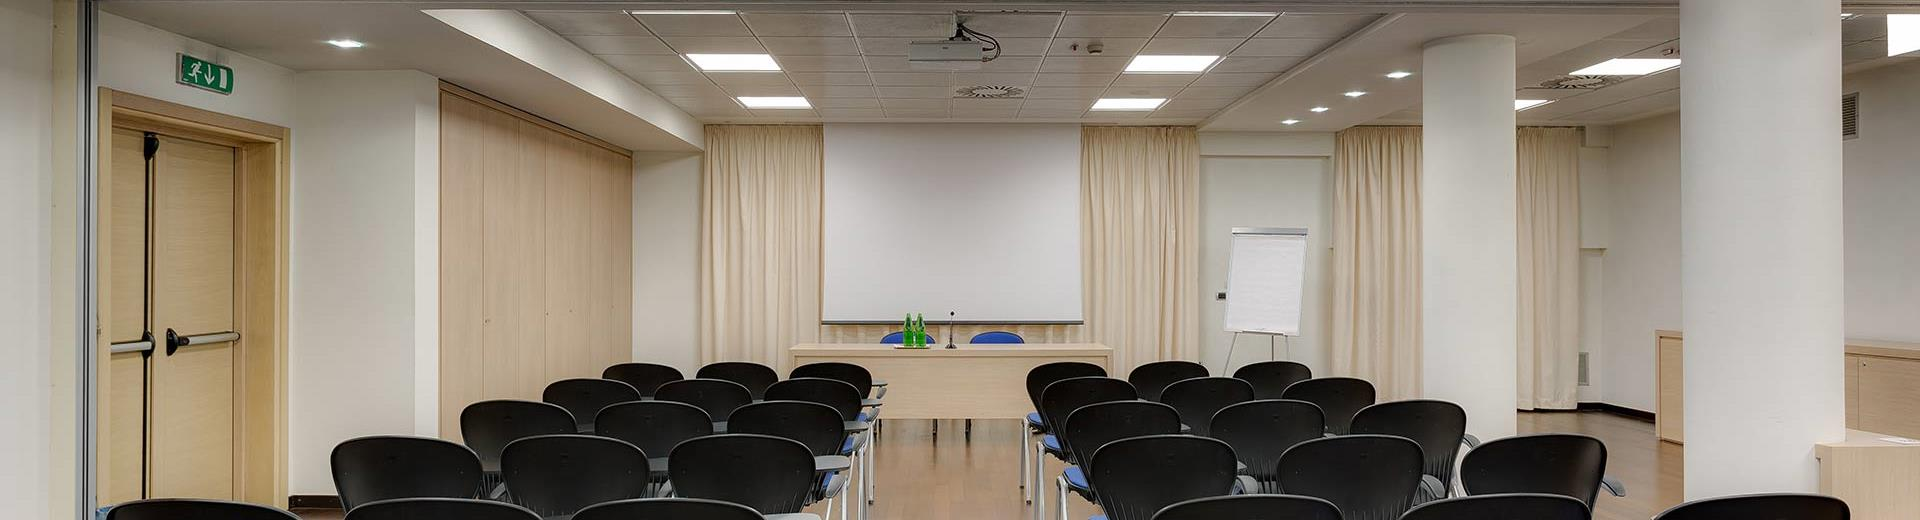 Meeting room for your conferences in Siena: Book The BW Hotel San Marco